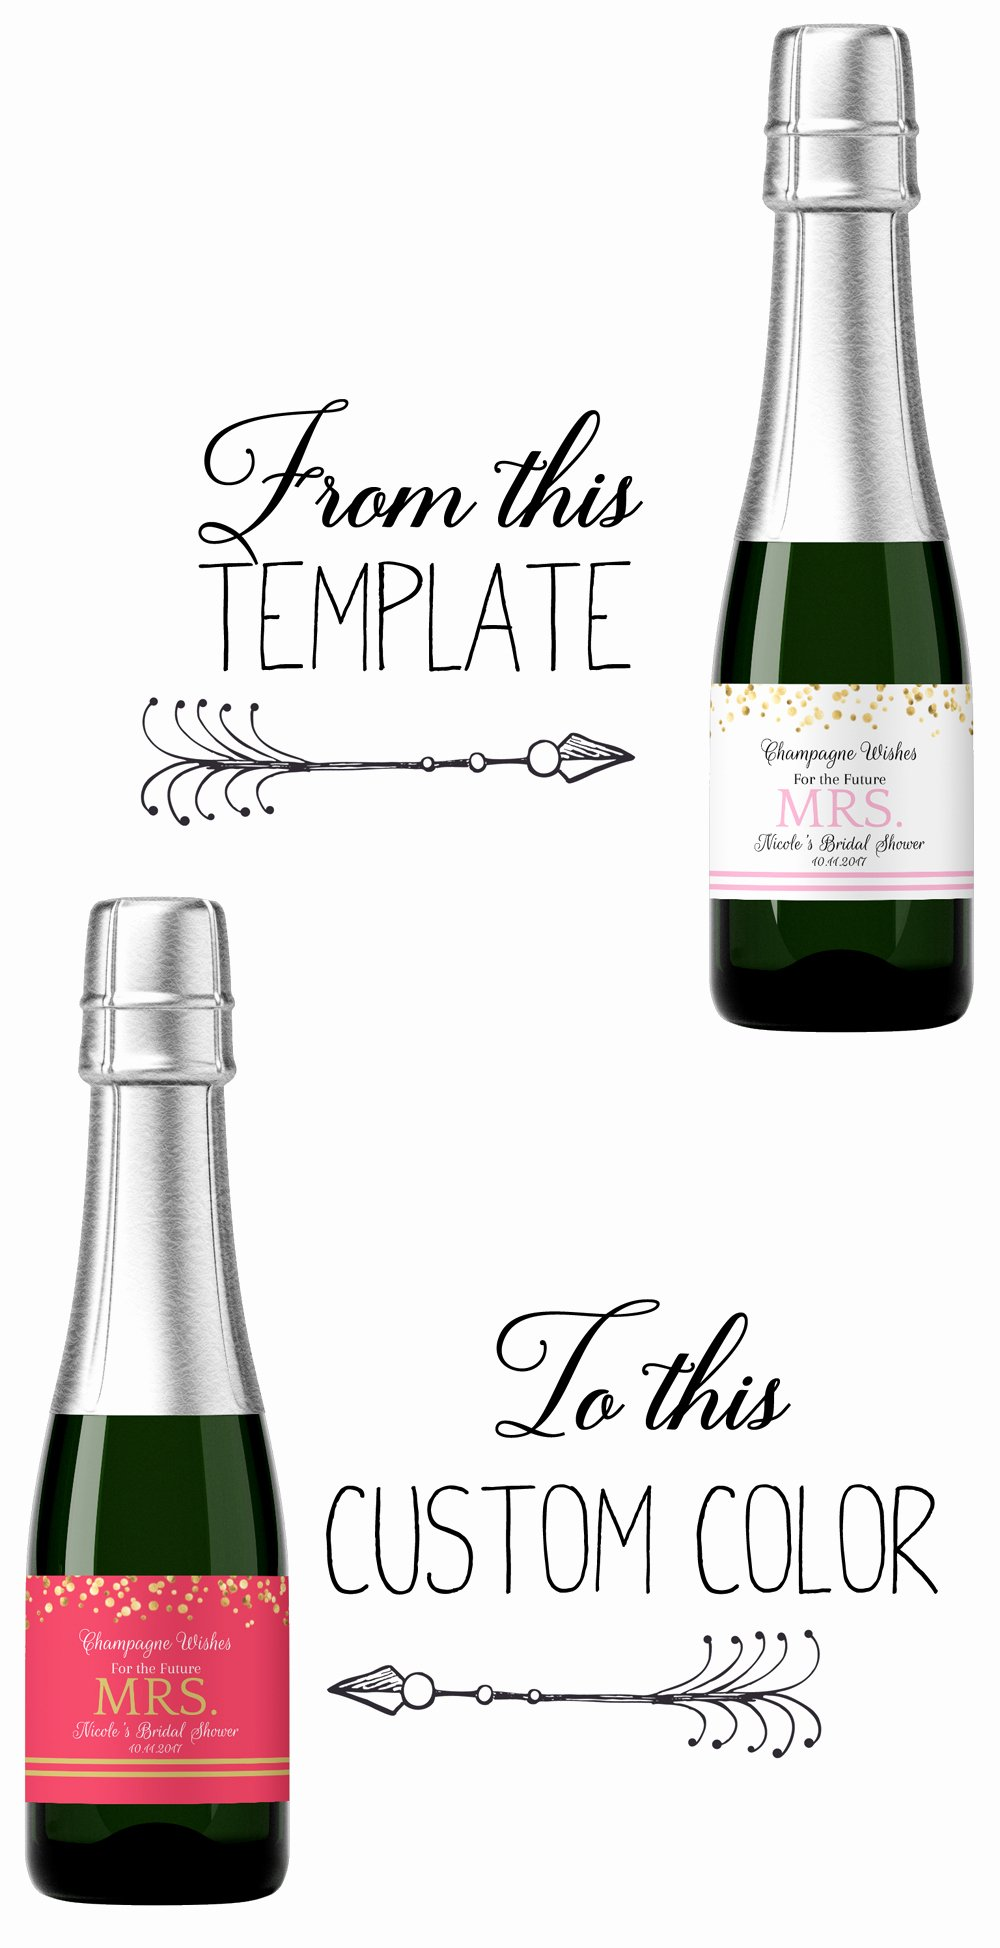 Mini Champagne Bottle Labels Template Elegant How to Make A Custom Label From A Template Step by Step Guide